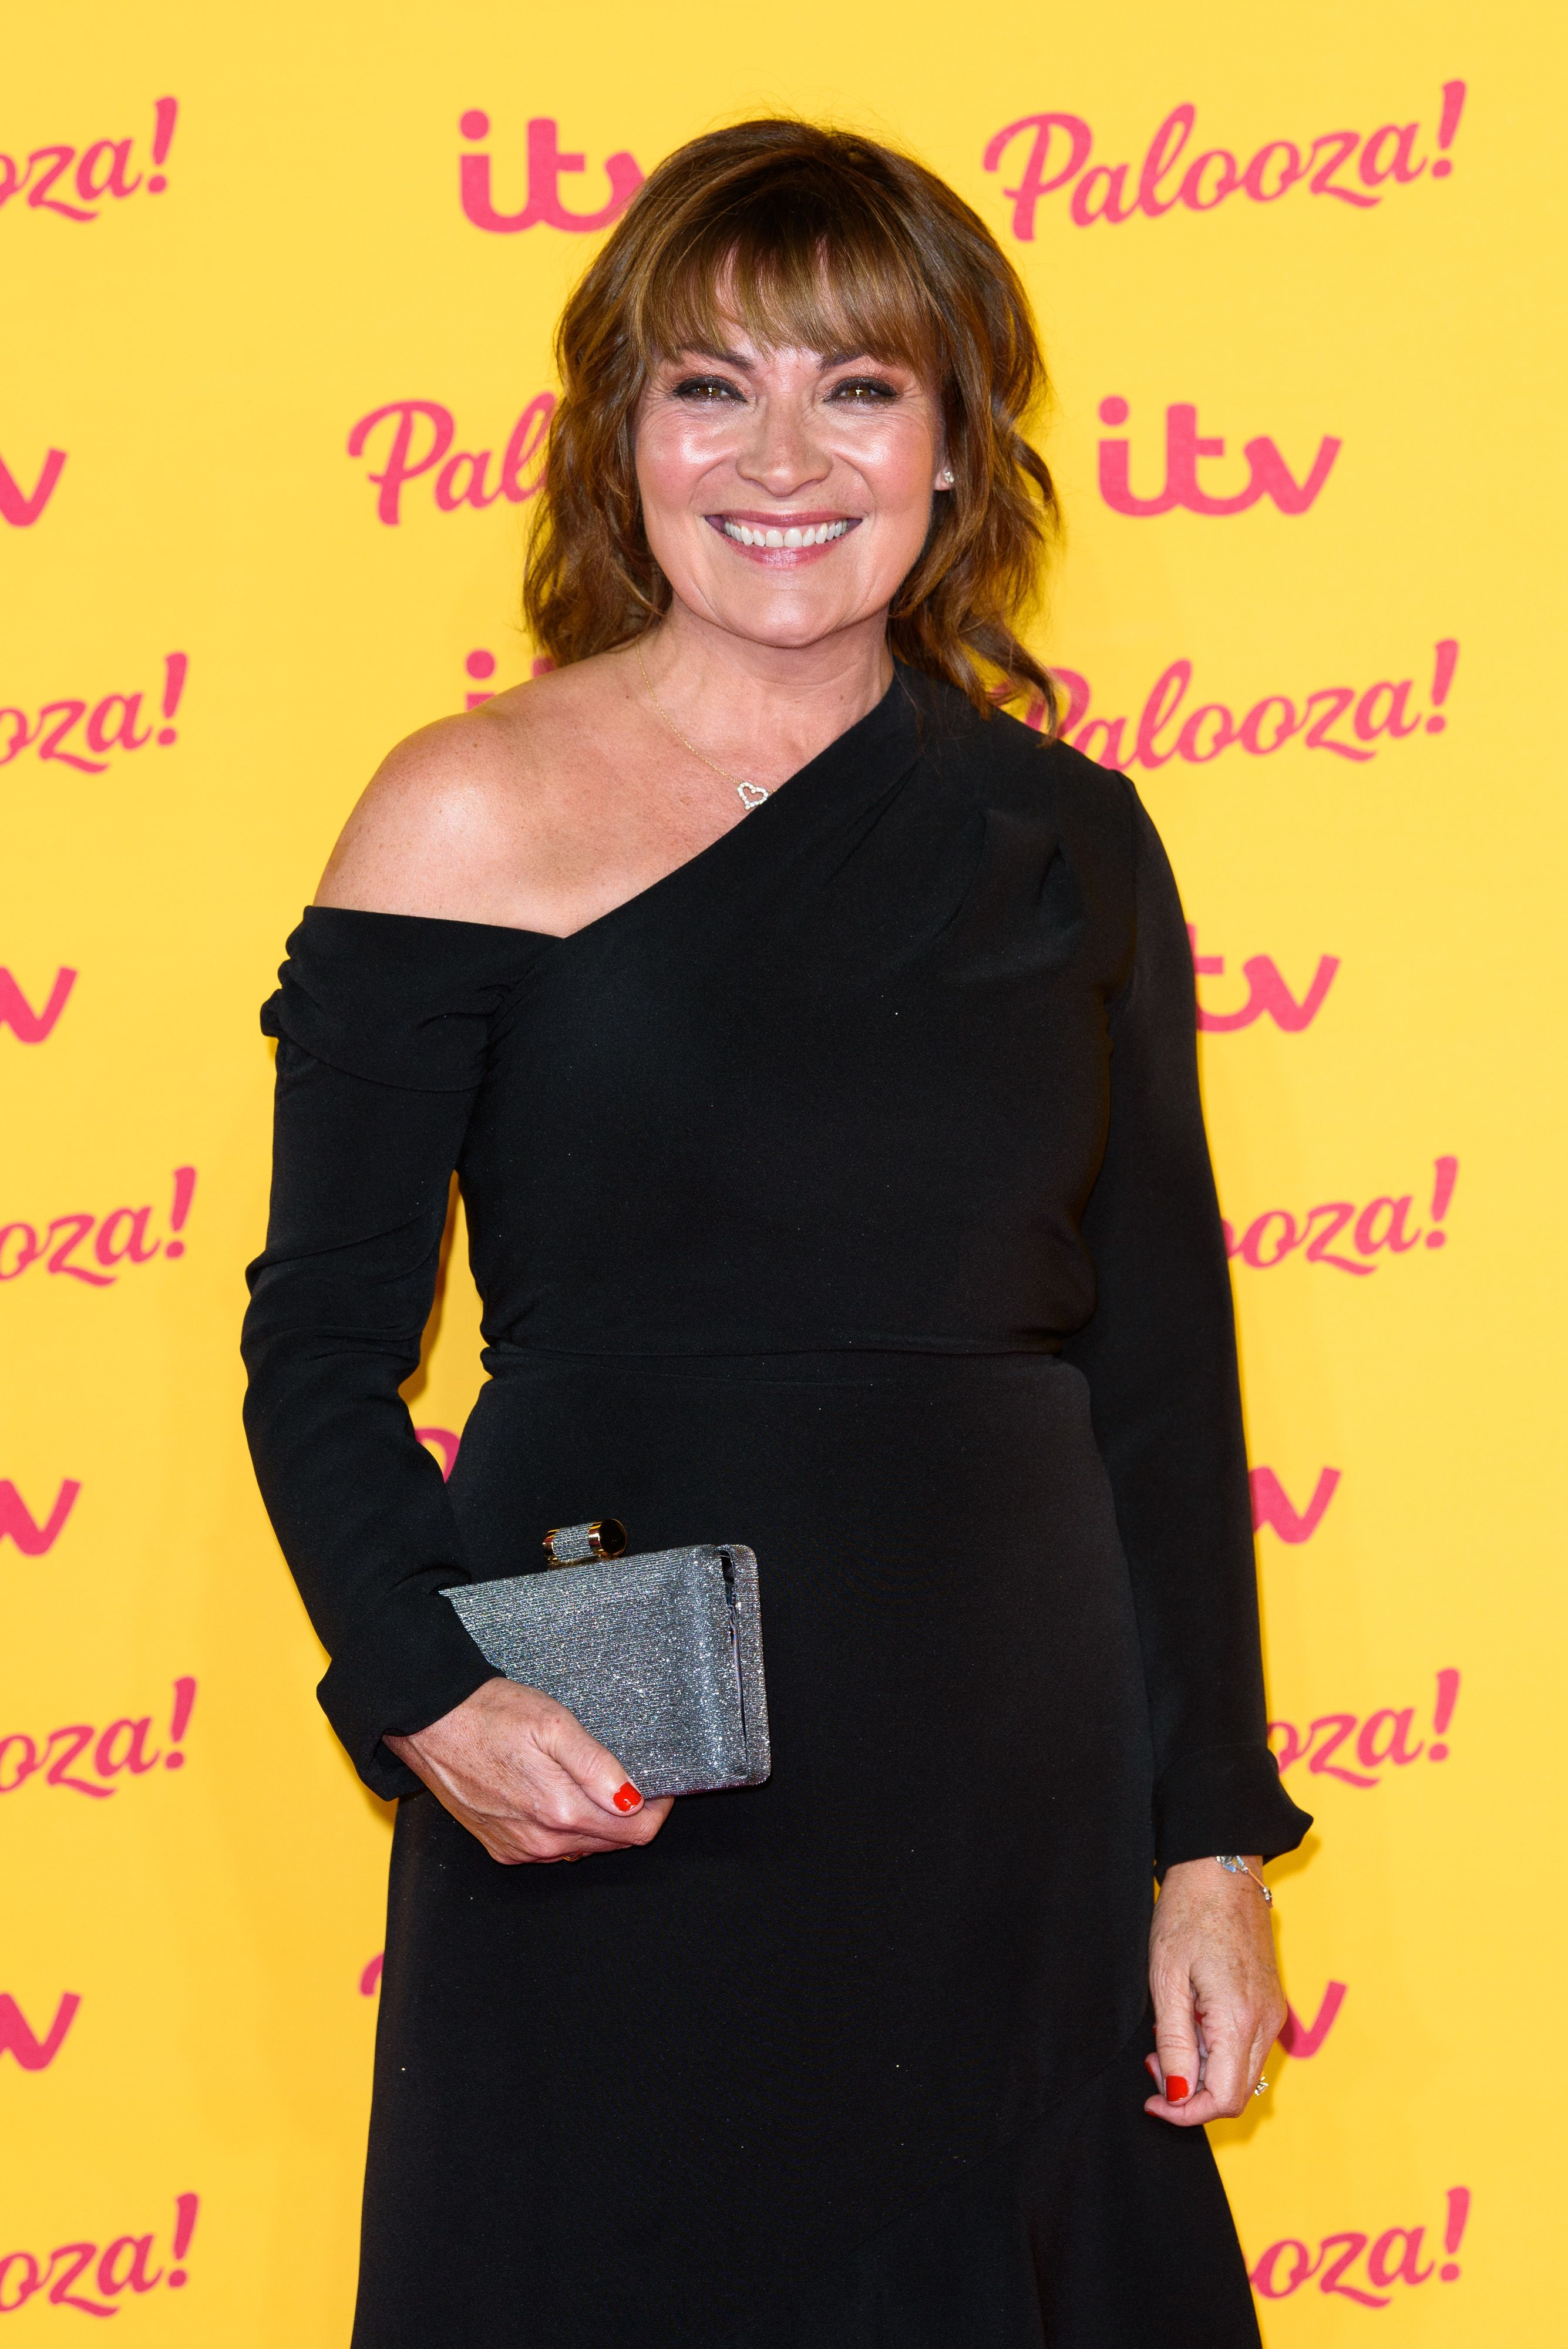 fc3c22aa9220 Lorraine Kelly Stuns In Affordable LBD At ITV Gala